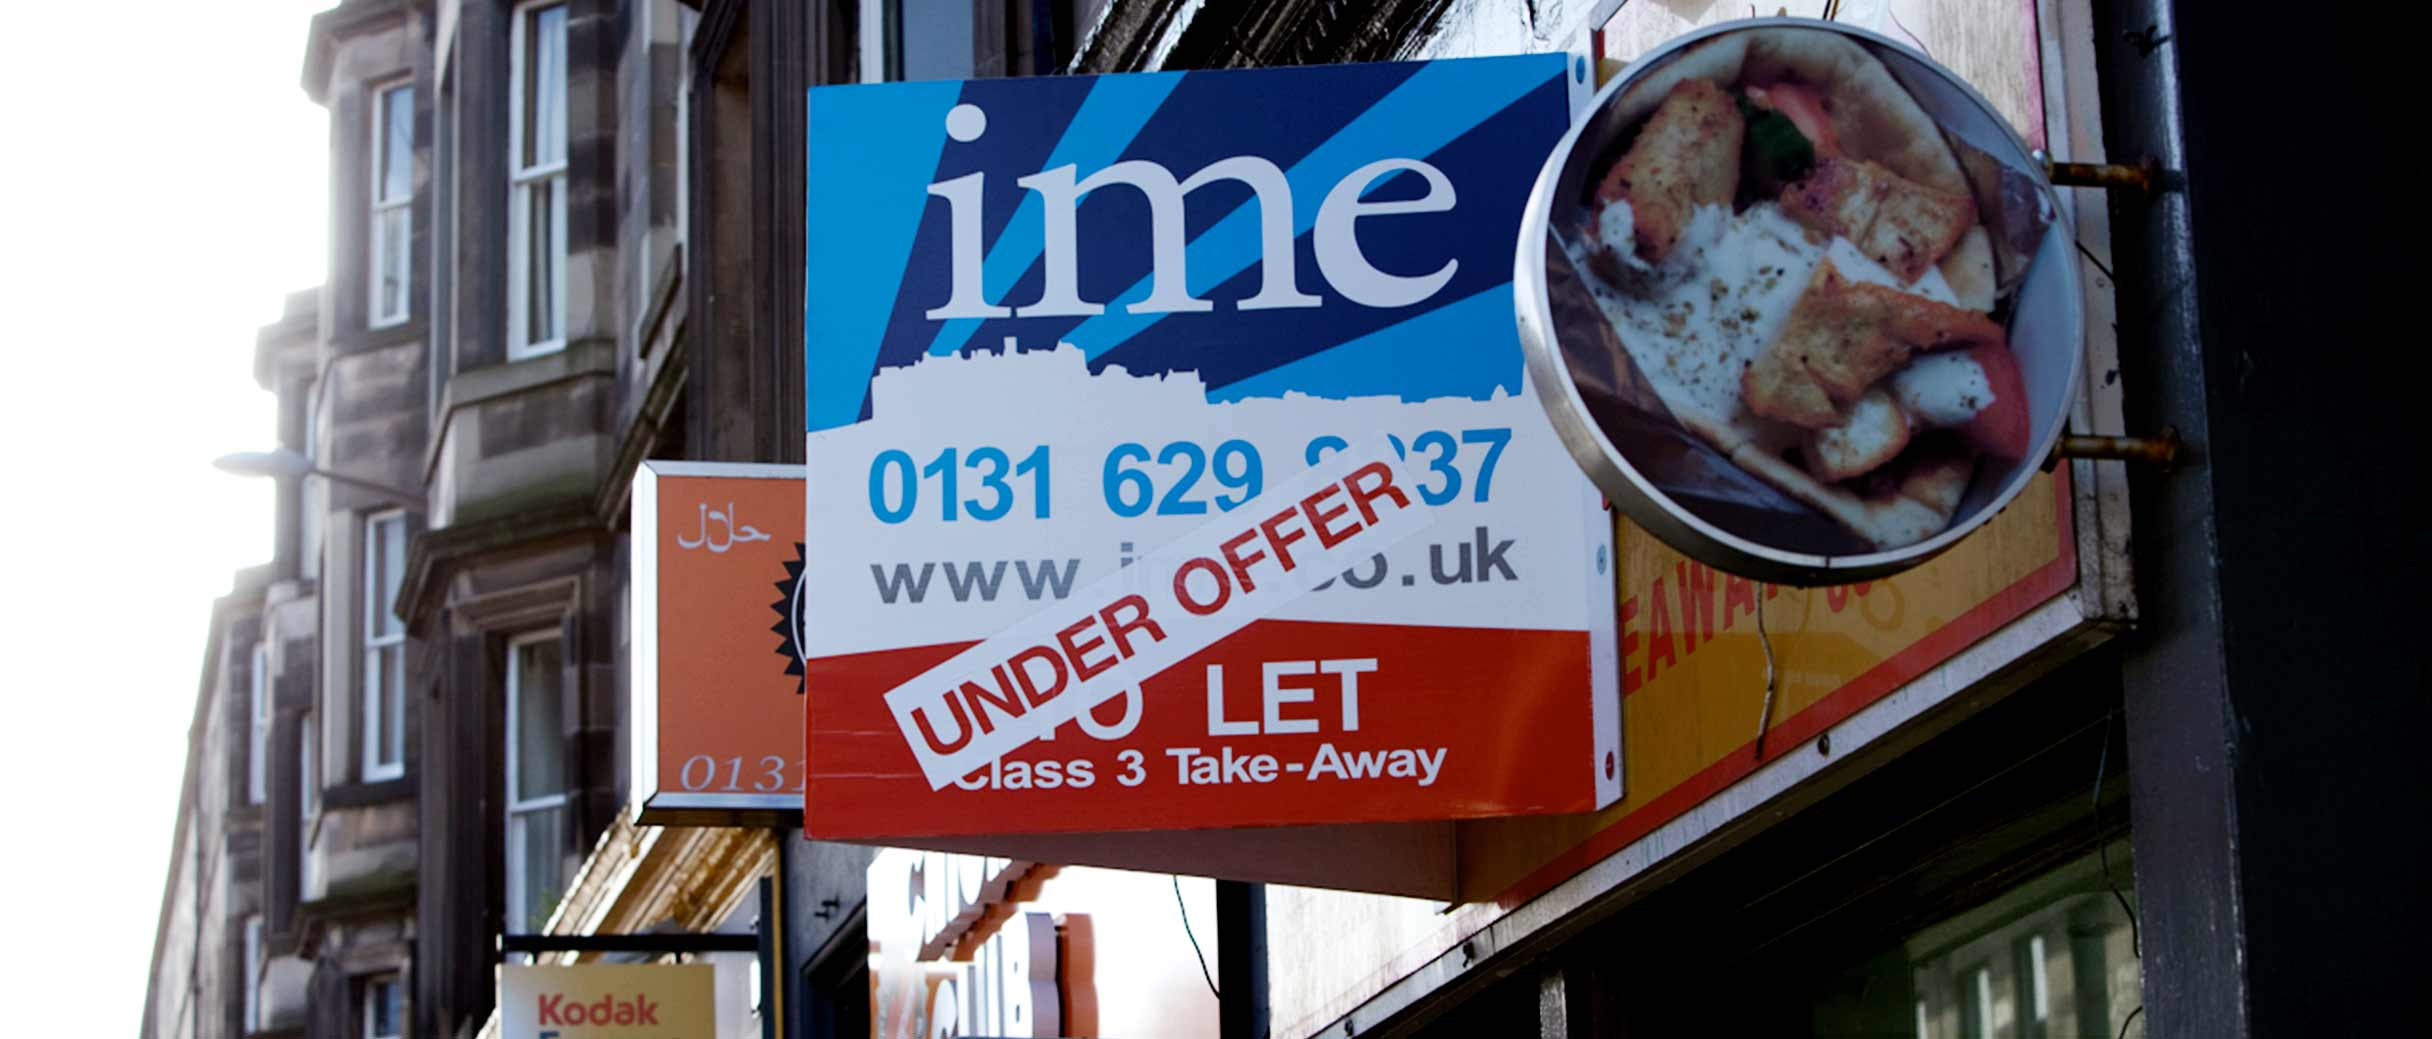 IME In Double Property Sale